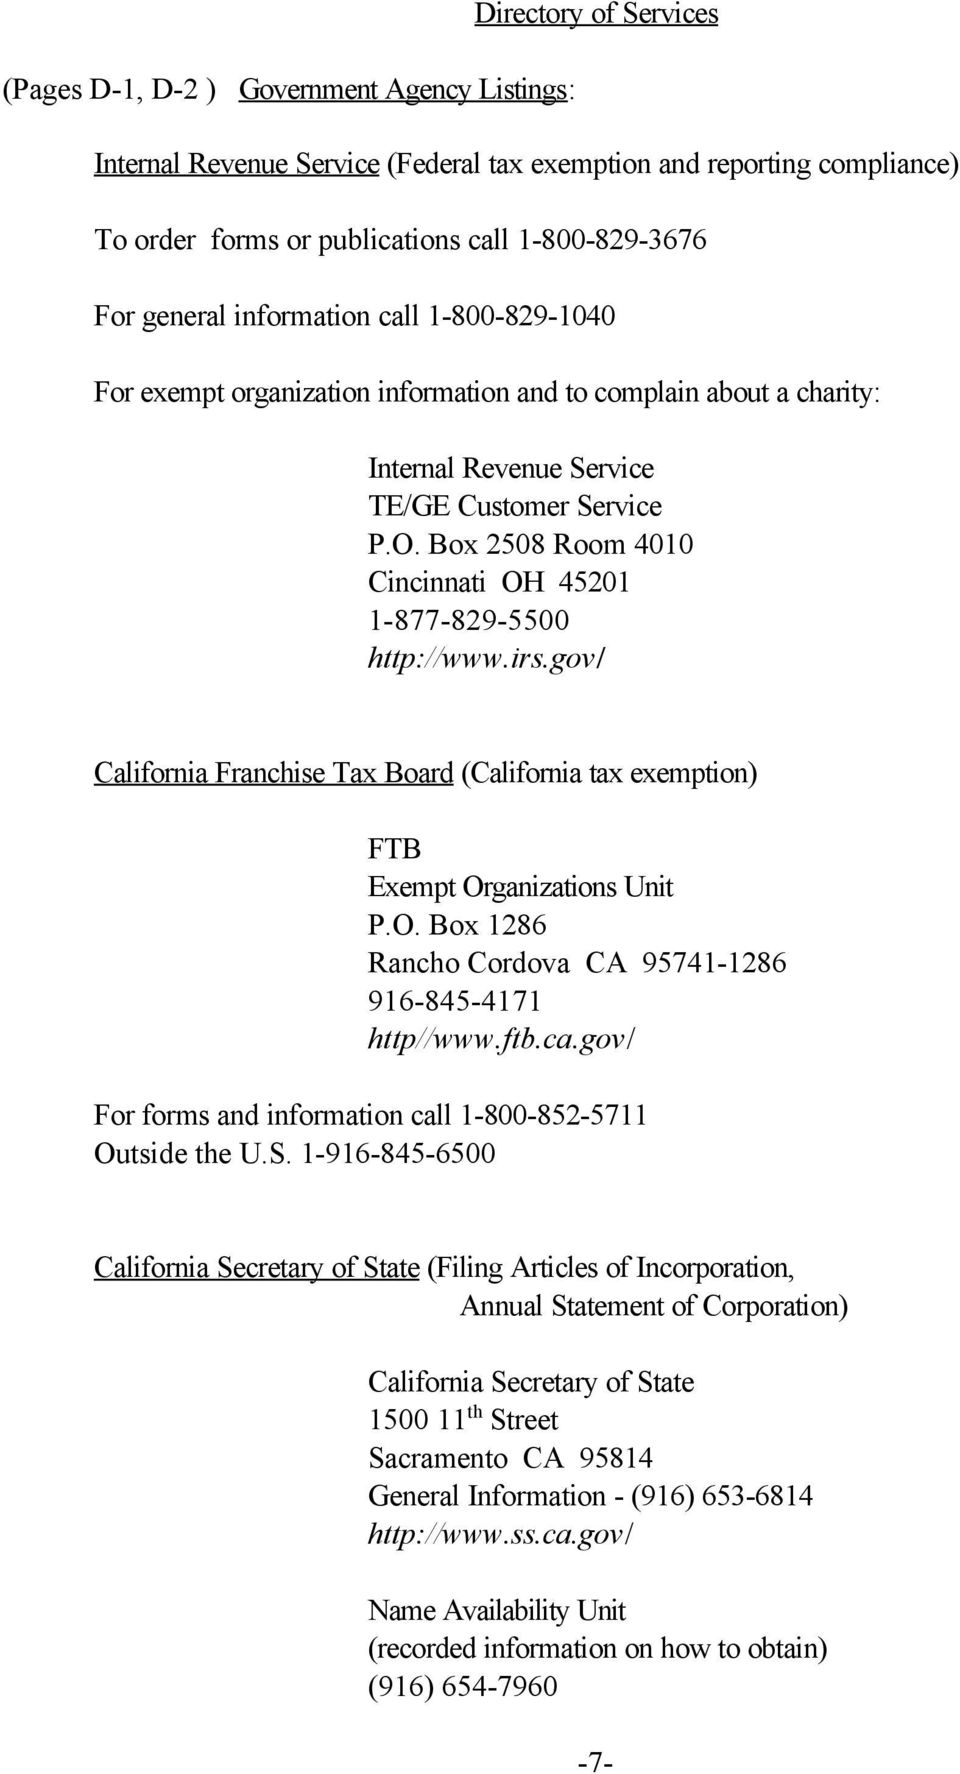 Box 2508 Room 4010 Cincinnati OH 45201 1-877-829-5500 http://www.irs.gov/ California Franchise Tax Board (California tax exemption) FTB Exempt Organizations Unit P.O. Box 1286 Rancho Cordova CA 95741-1286 916-845-4171 http//www.